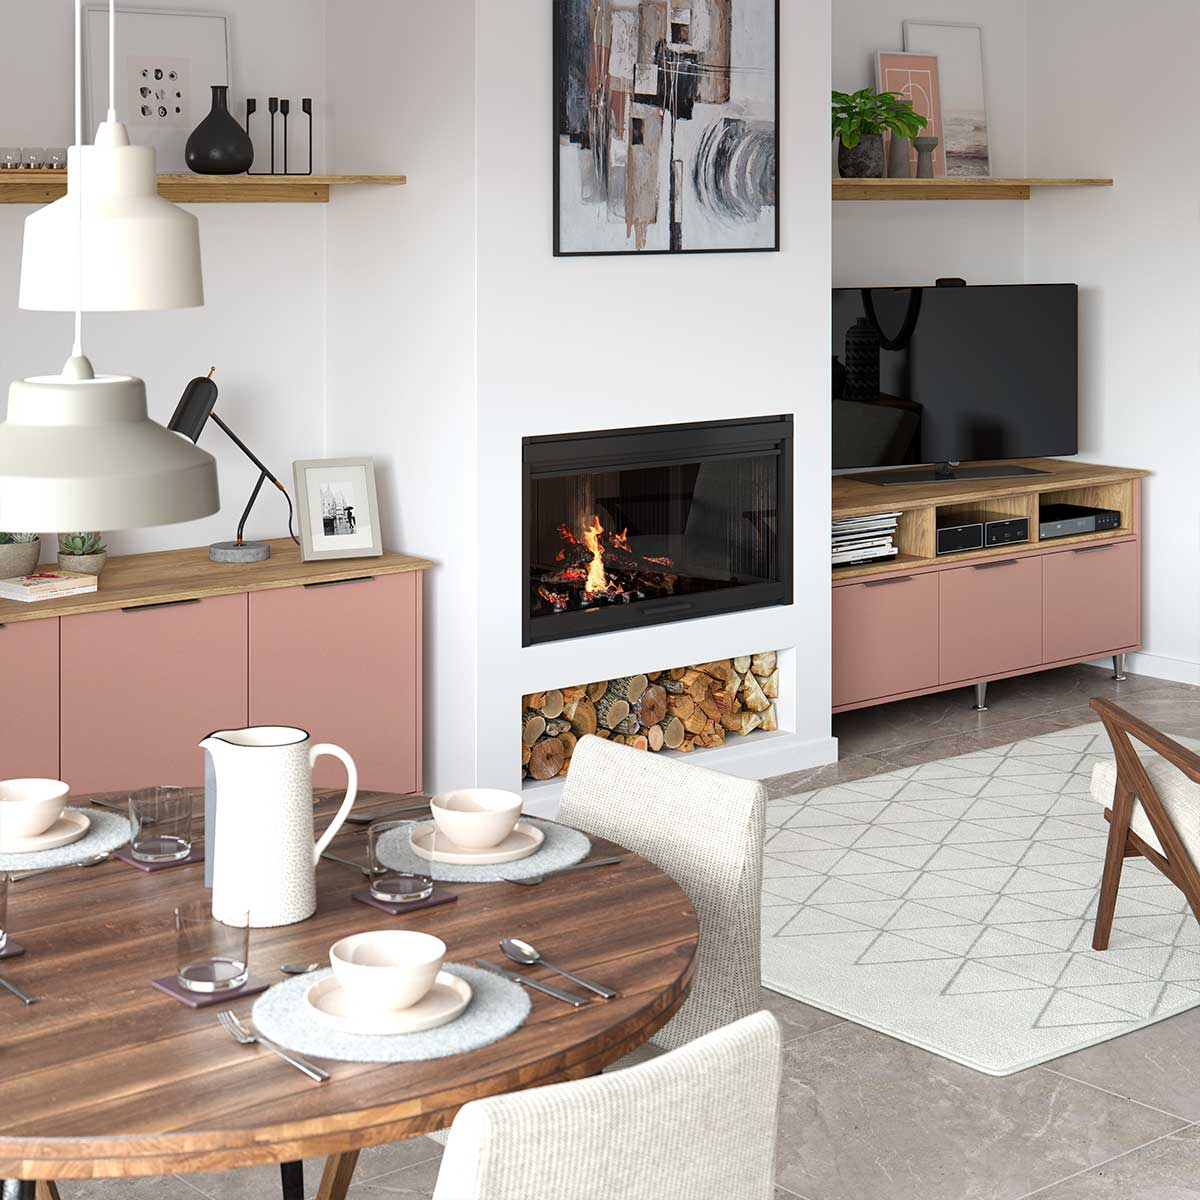 Sutton sideboard in Autumn Blush.